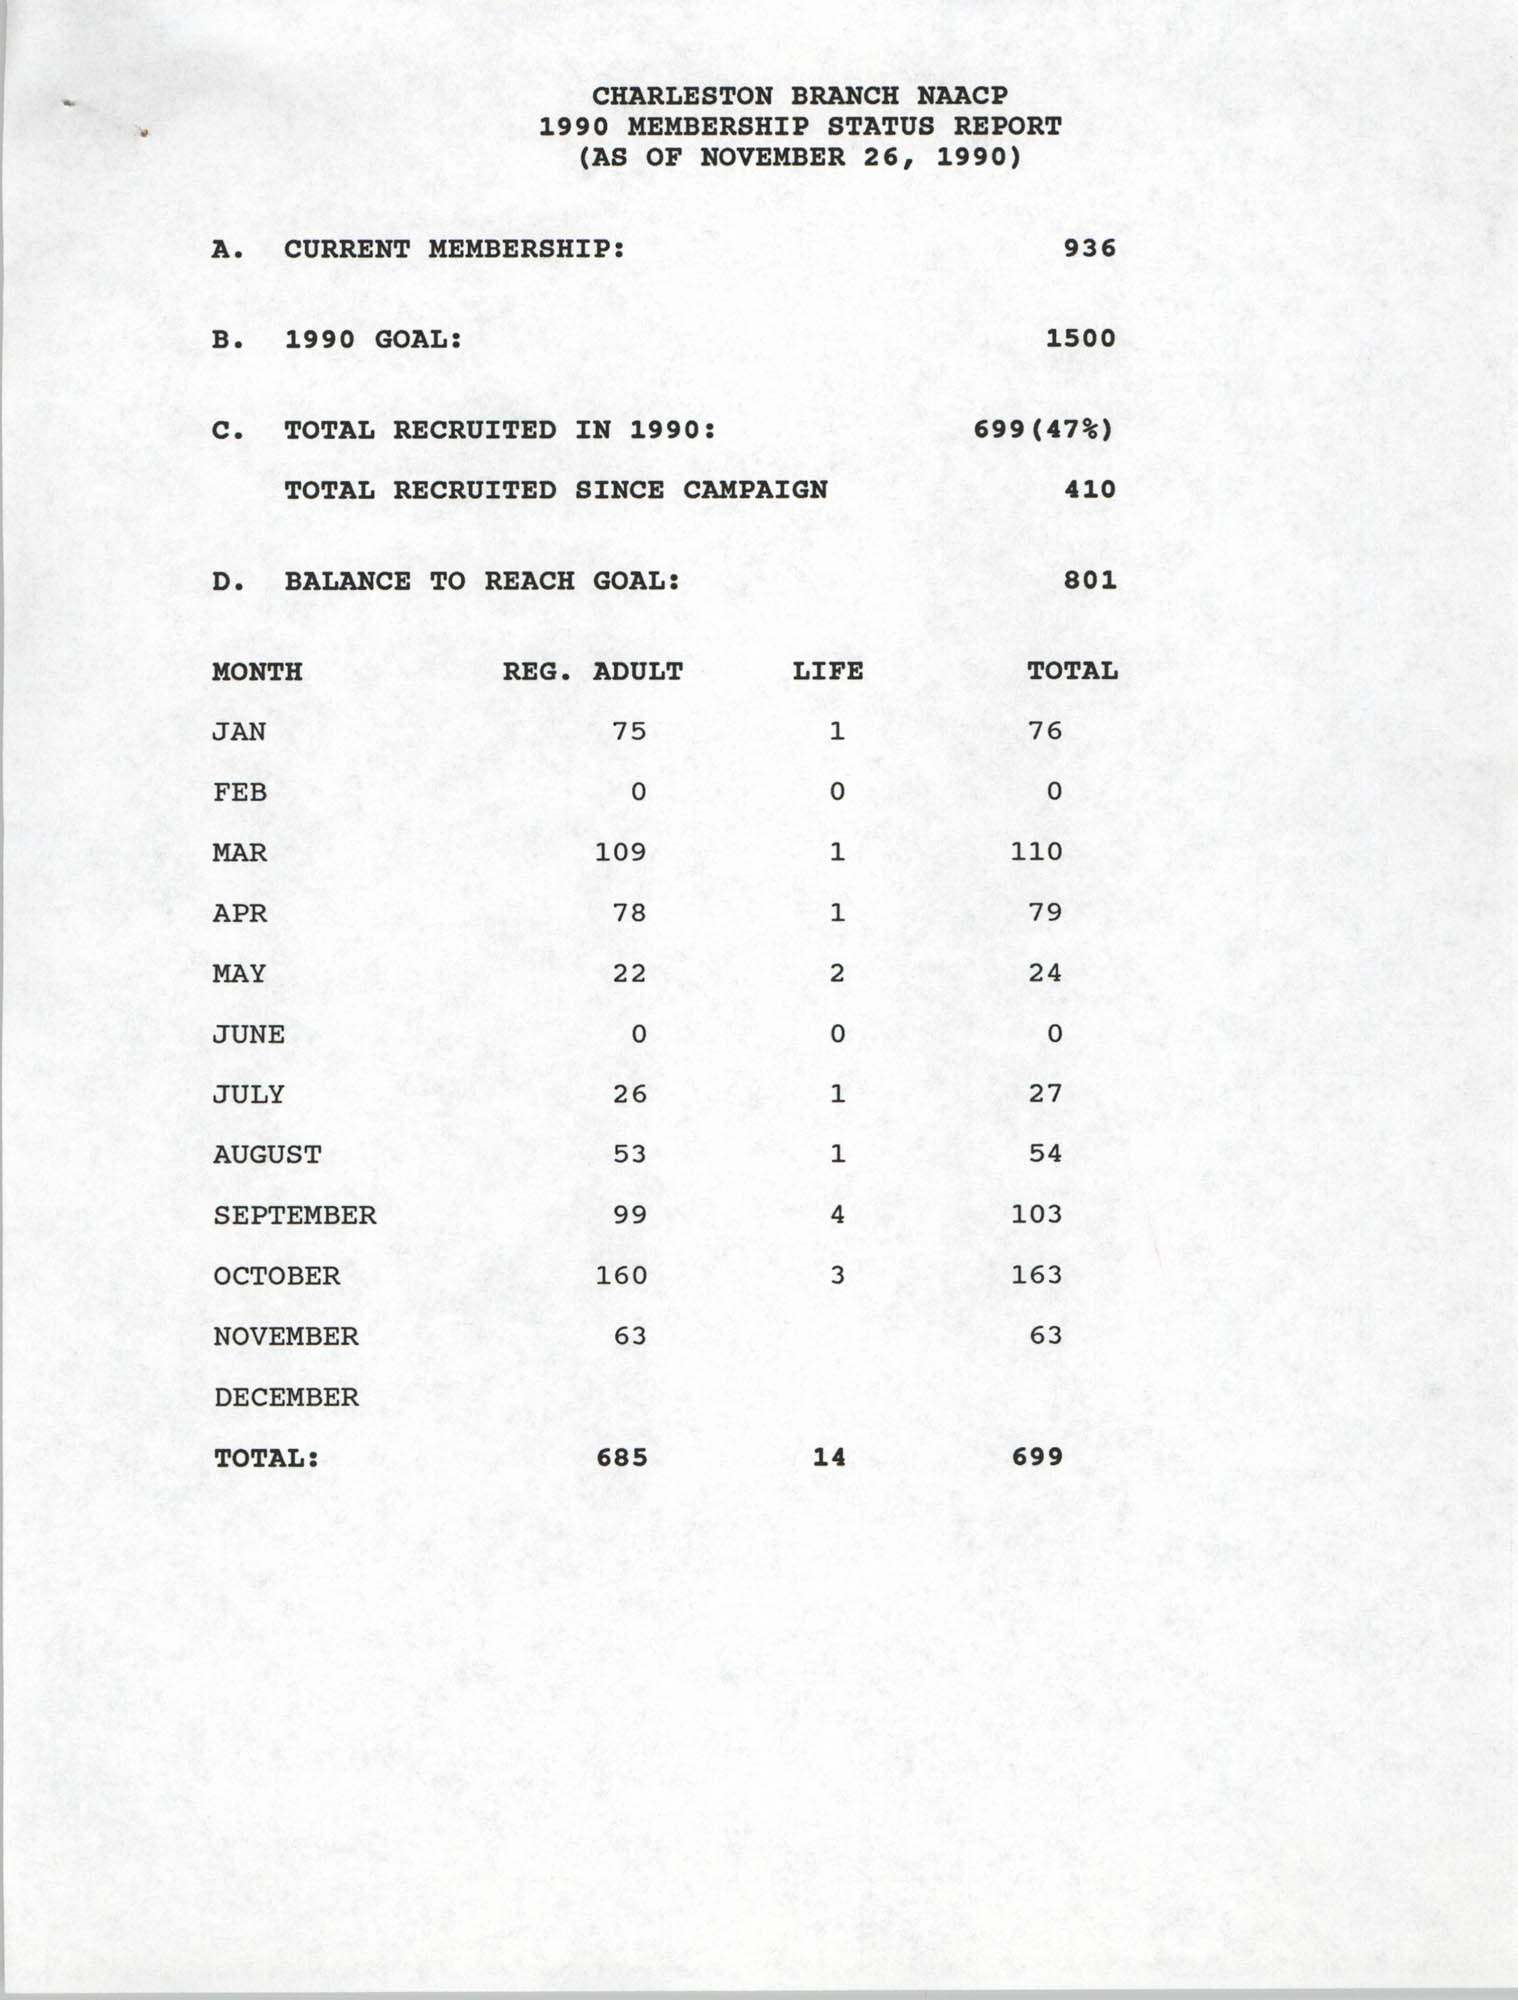 Membership Status Report, National Association for the Advancement of Colored People, November 26, 1990